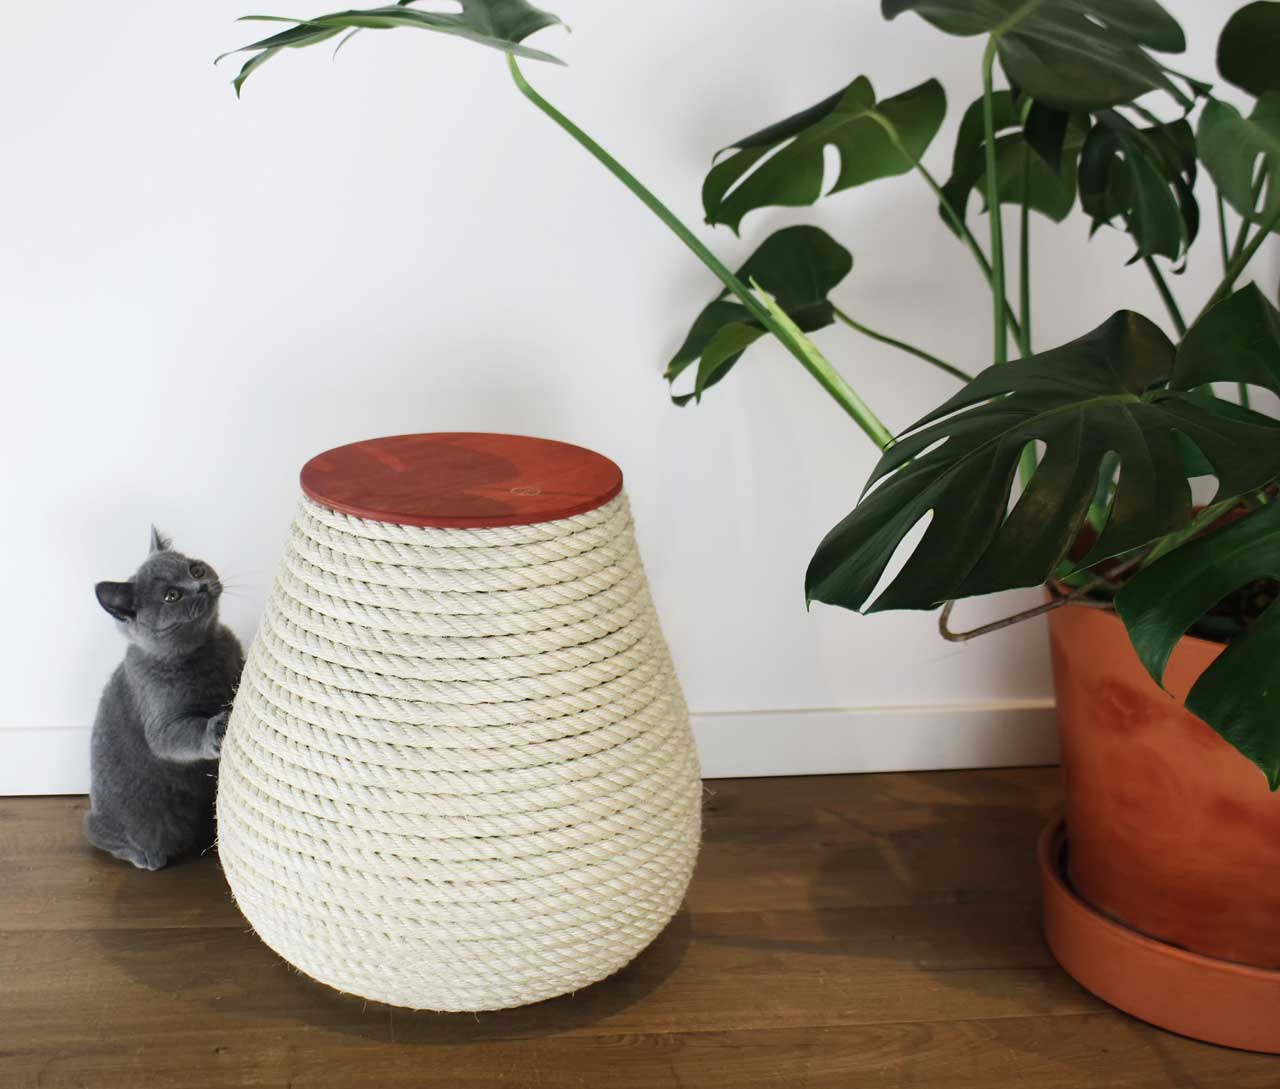 Krab Designed a Stool Your Cats Can Tear Up